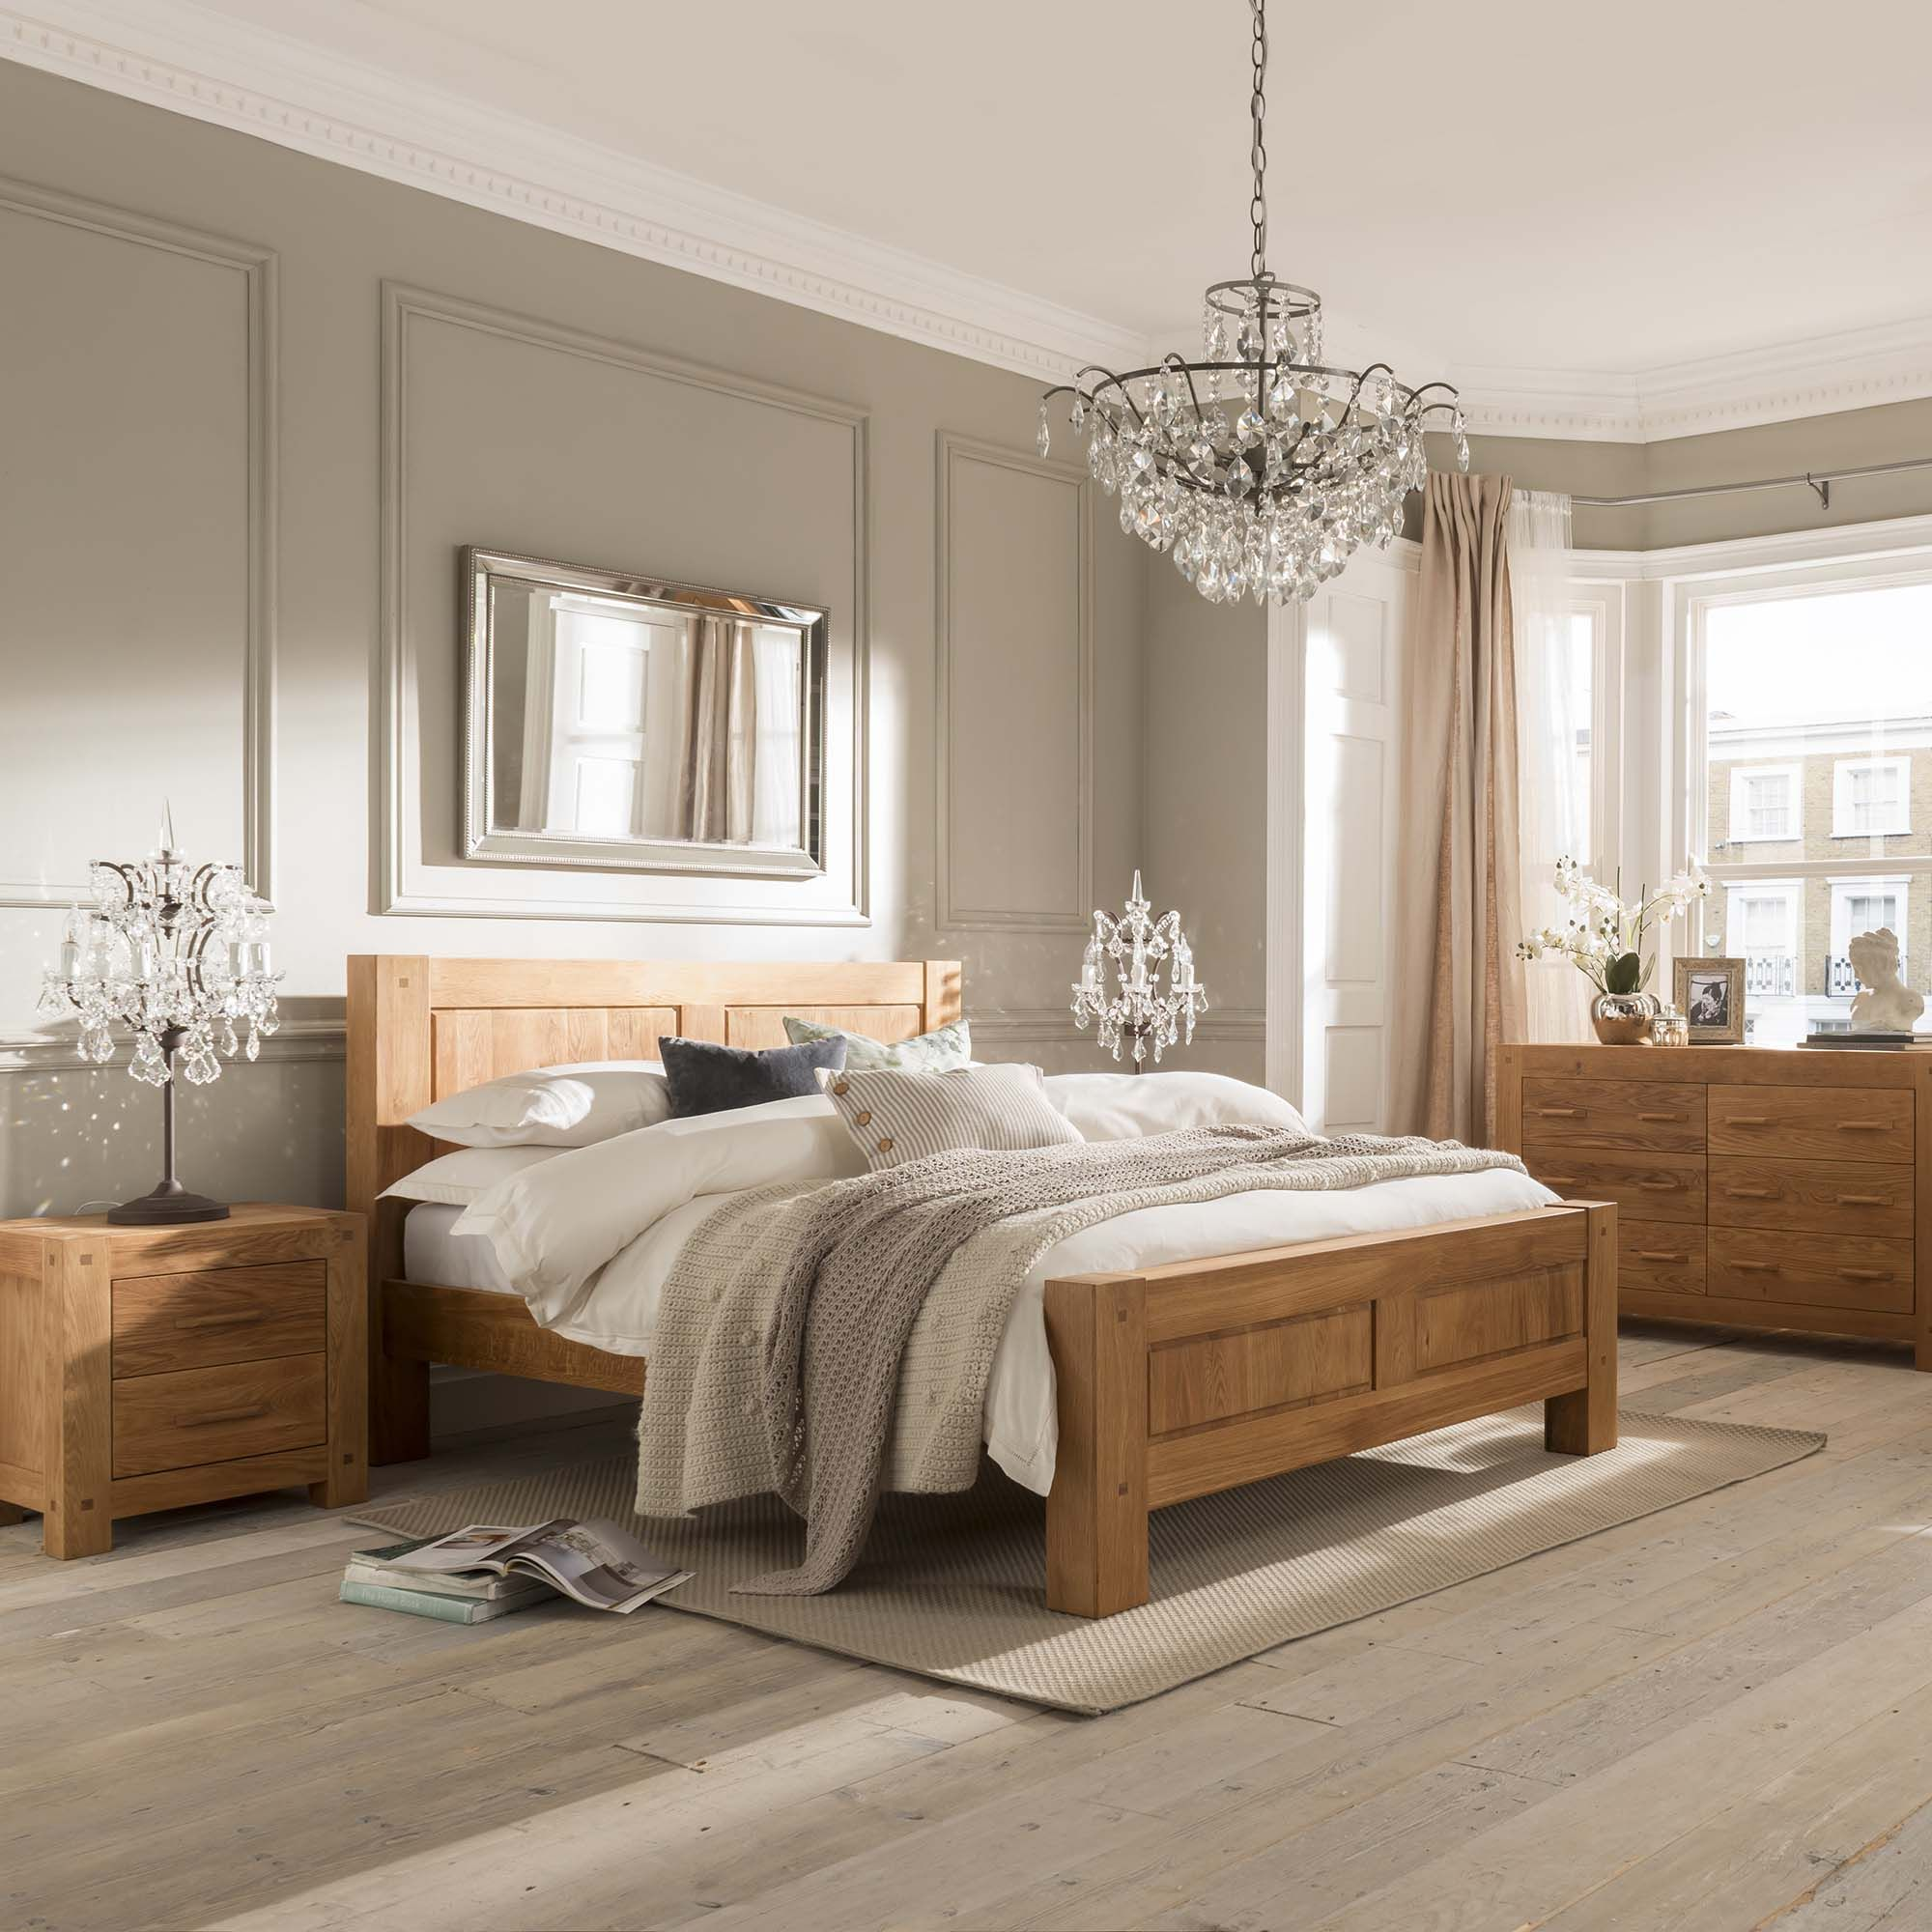 Quality Oak Bedroom Furniture Combining Quality And Style The Tacoma Bedroom Range Has A Simple